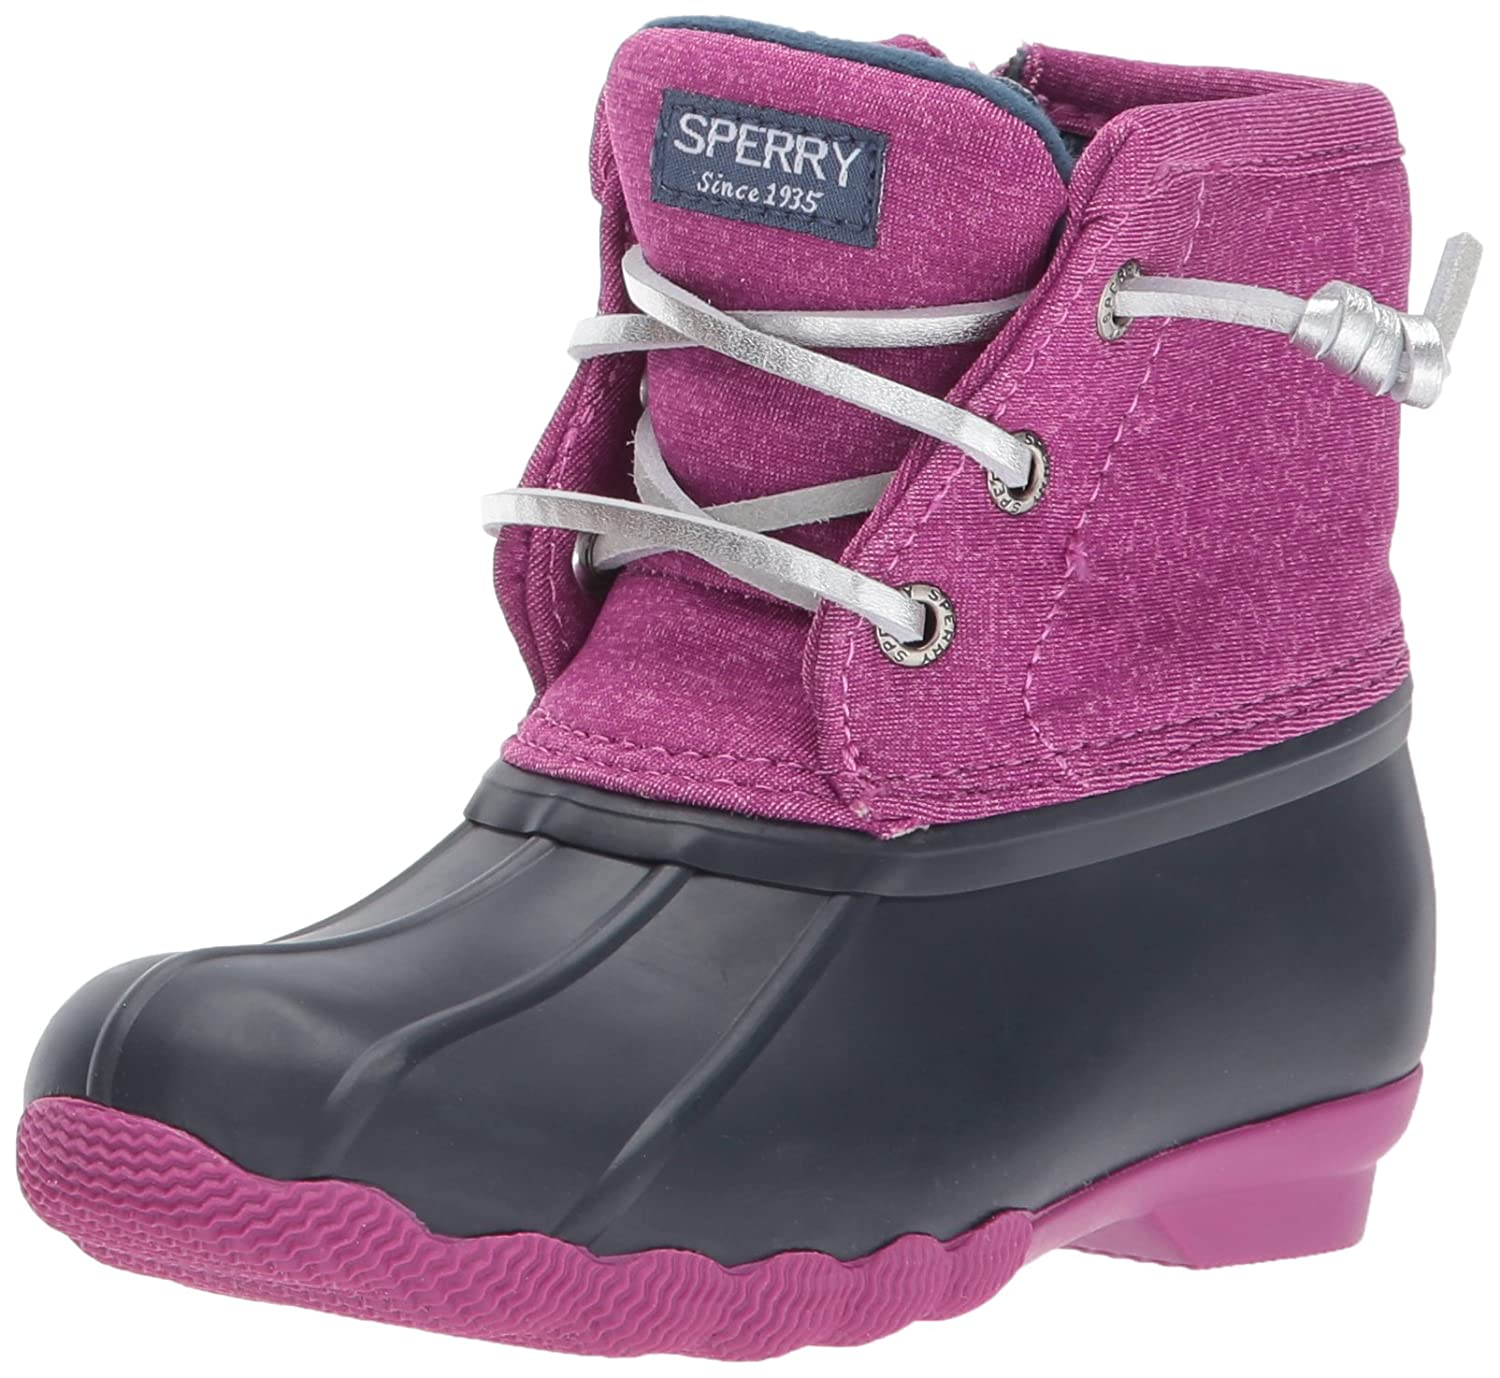 Sperry Saltwater Snow Boot (Toddler/Little Kid/Big Kid)